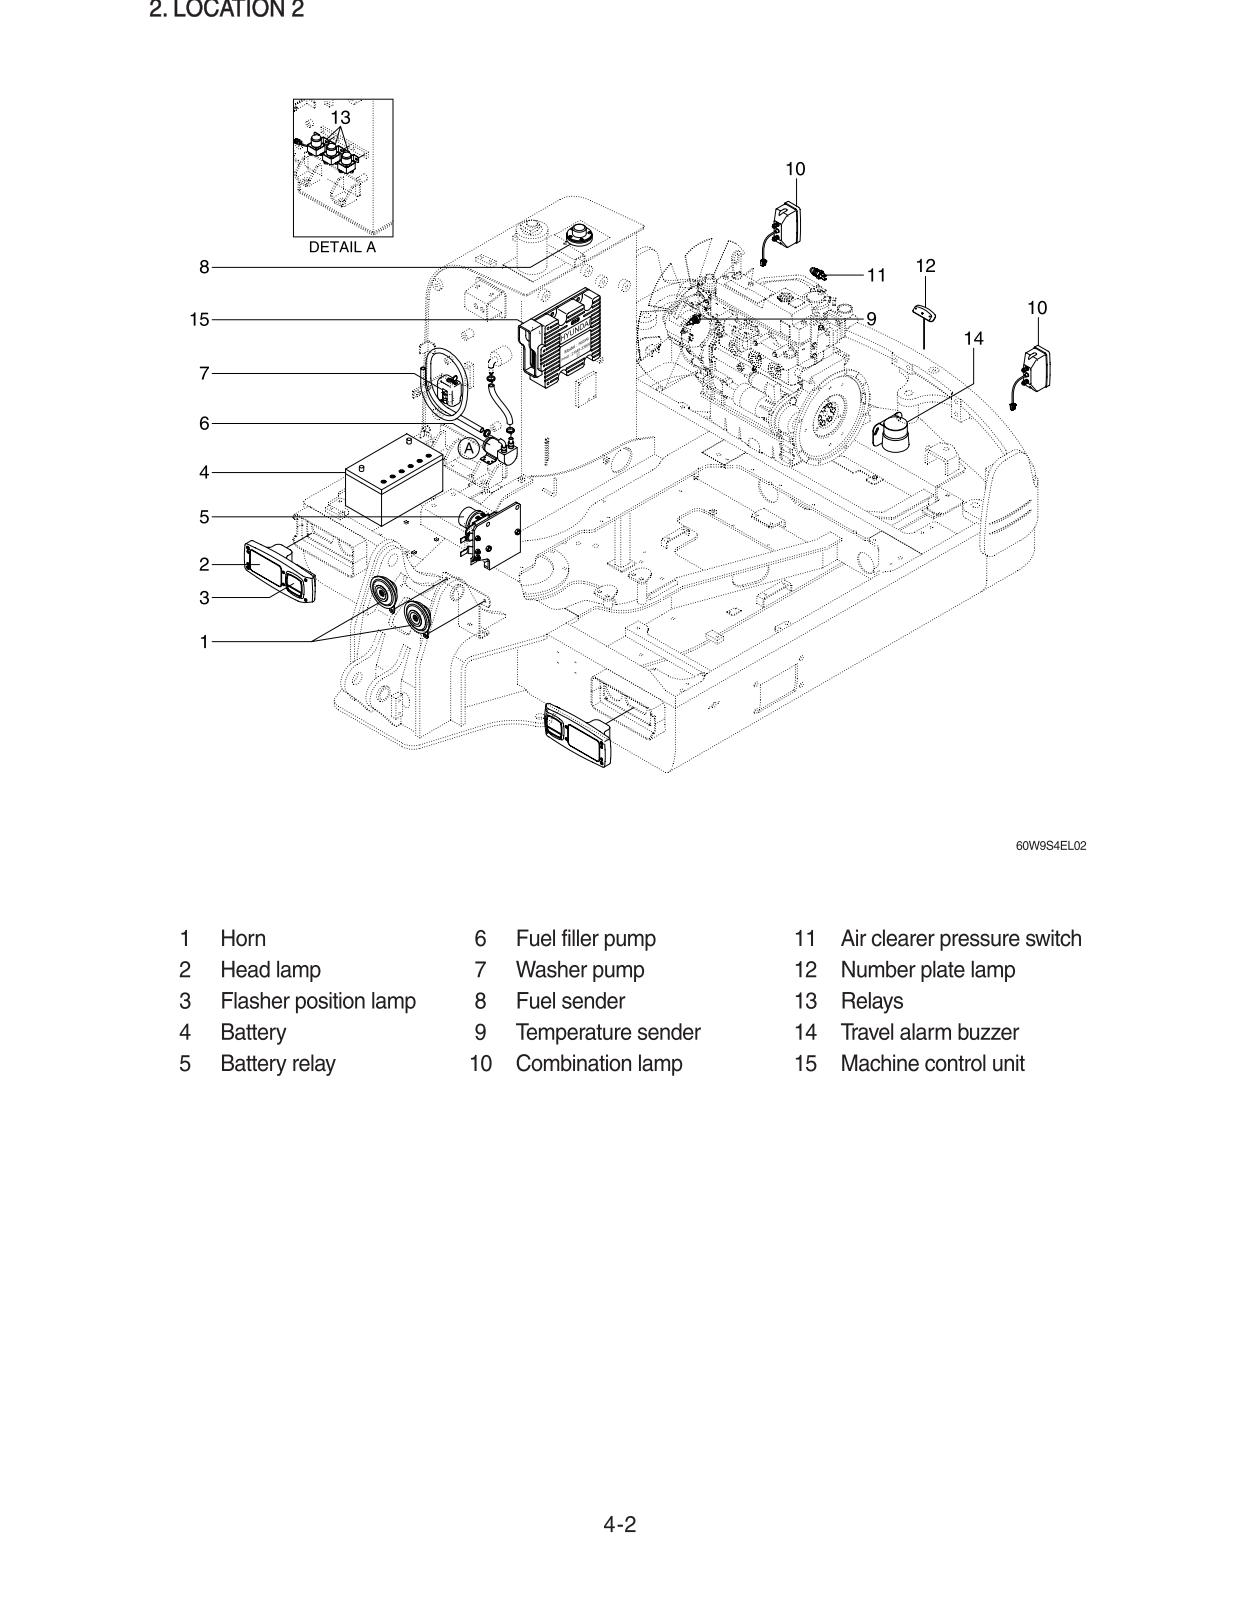 Guidelines for repair and maintenance of Hyundai R60W-9S